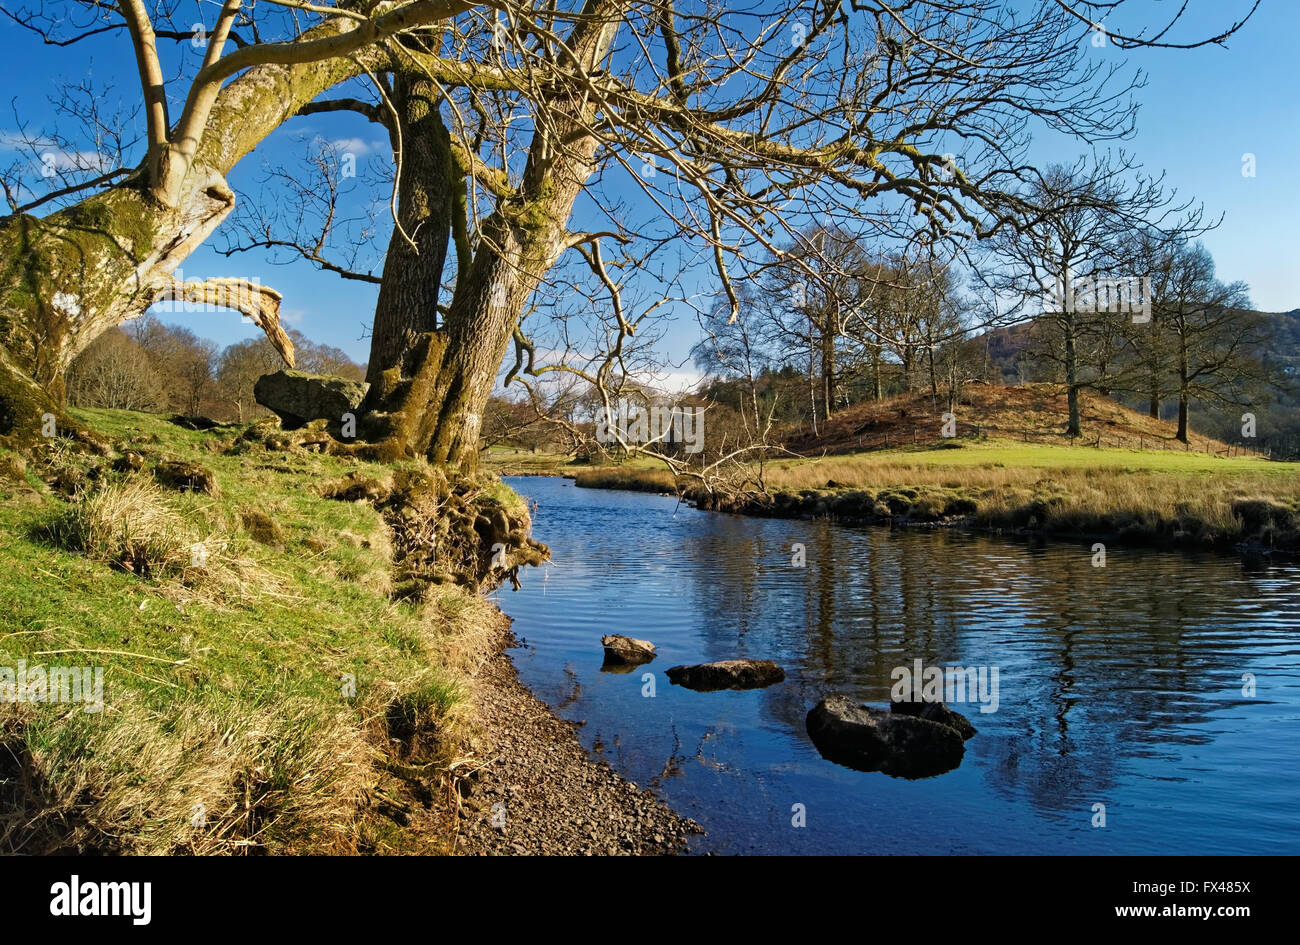 UK,Cumbria,Lake District,River Brathay near Elterwater Stock Photo